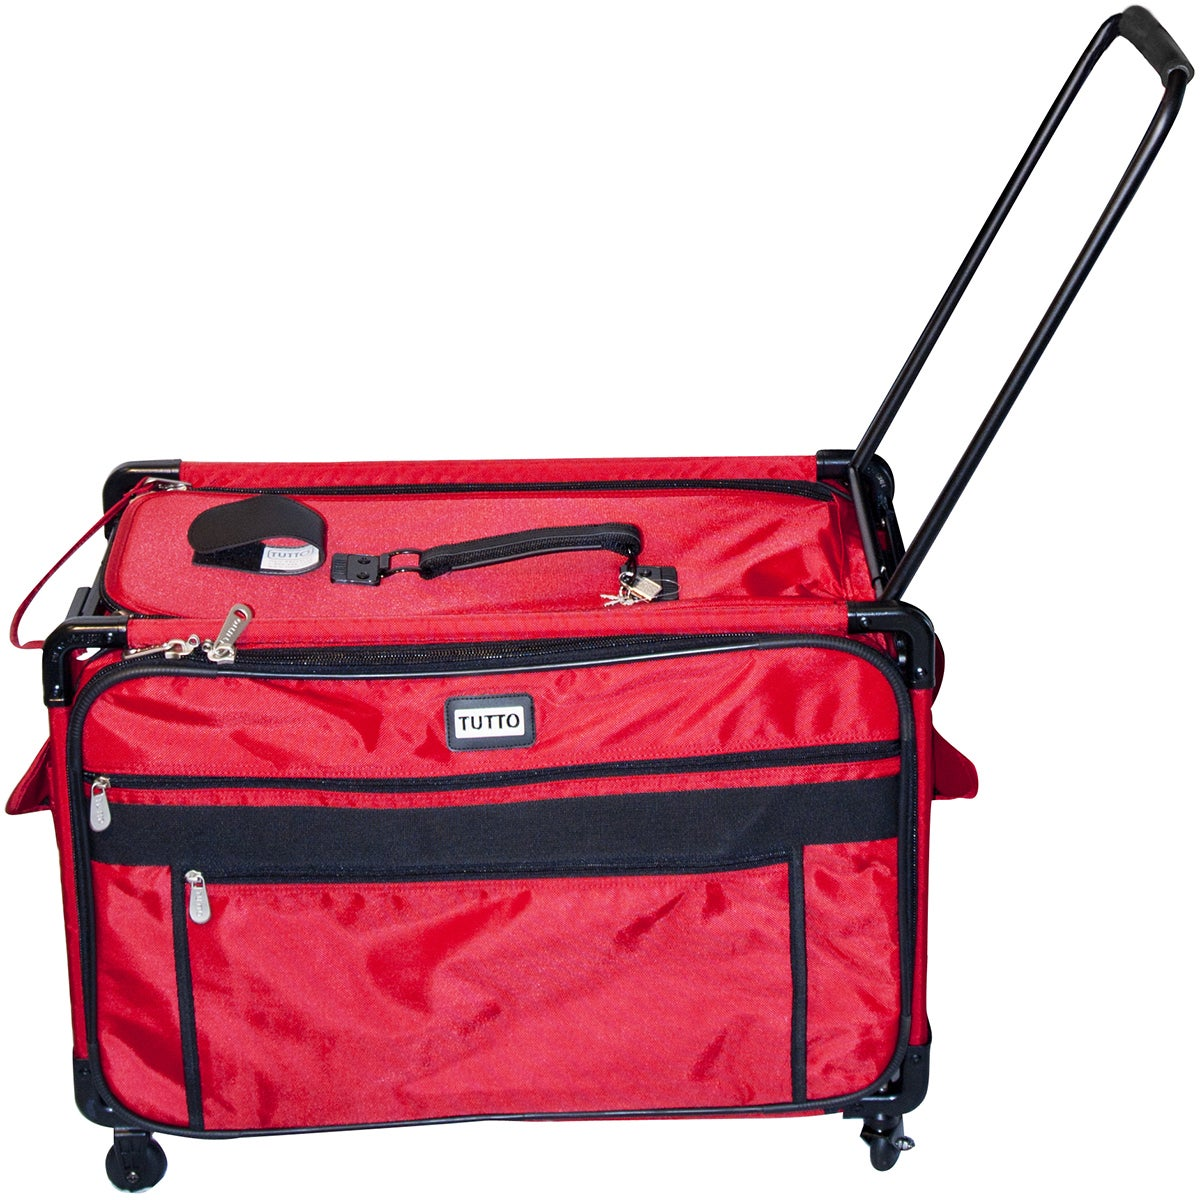 TUTTO Machine On Wheels Case (Red) (Synthetic Fiber)